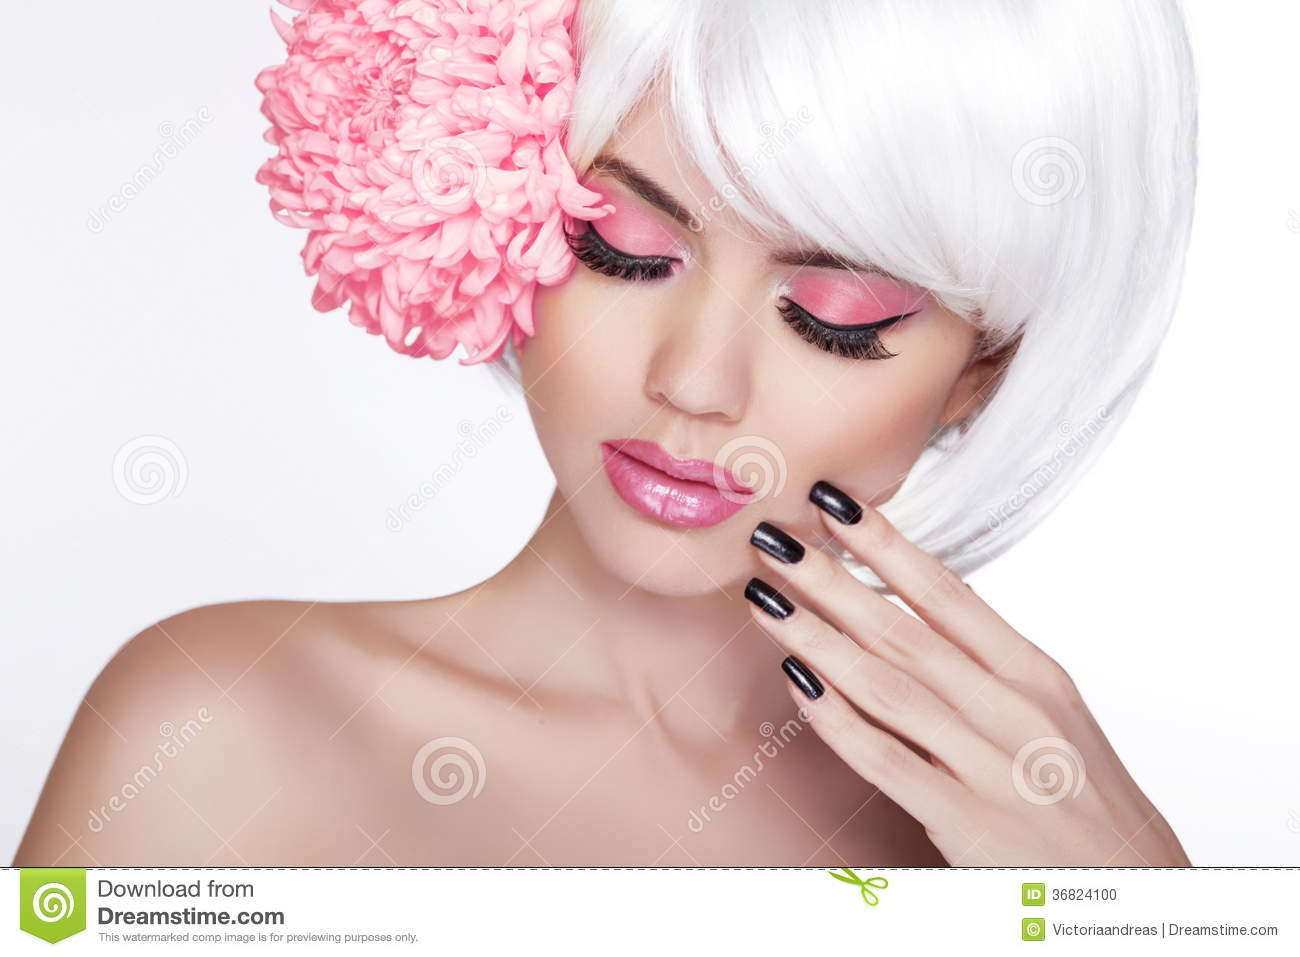 Beauty blond female portrait with lilac flower beautiful spa wo beauty blond female portrait with lilac flower beautiful spa wo izmirmasajfo Image collections